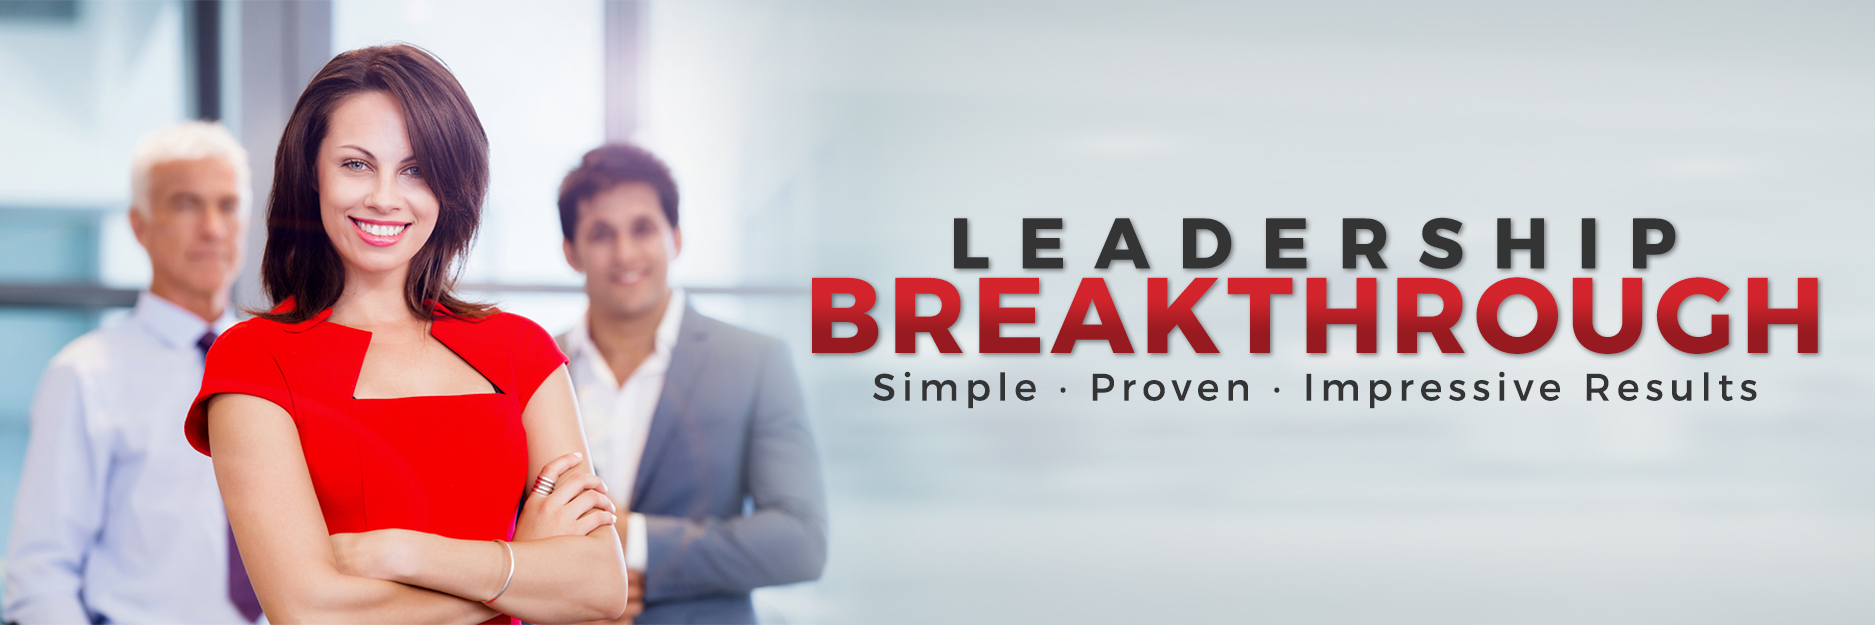 Leadership Breakthrough Training